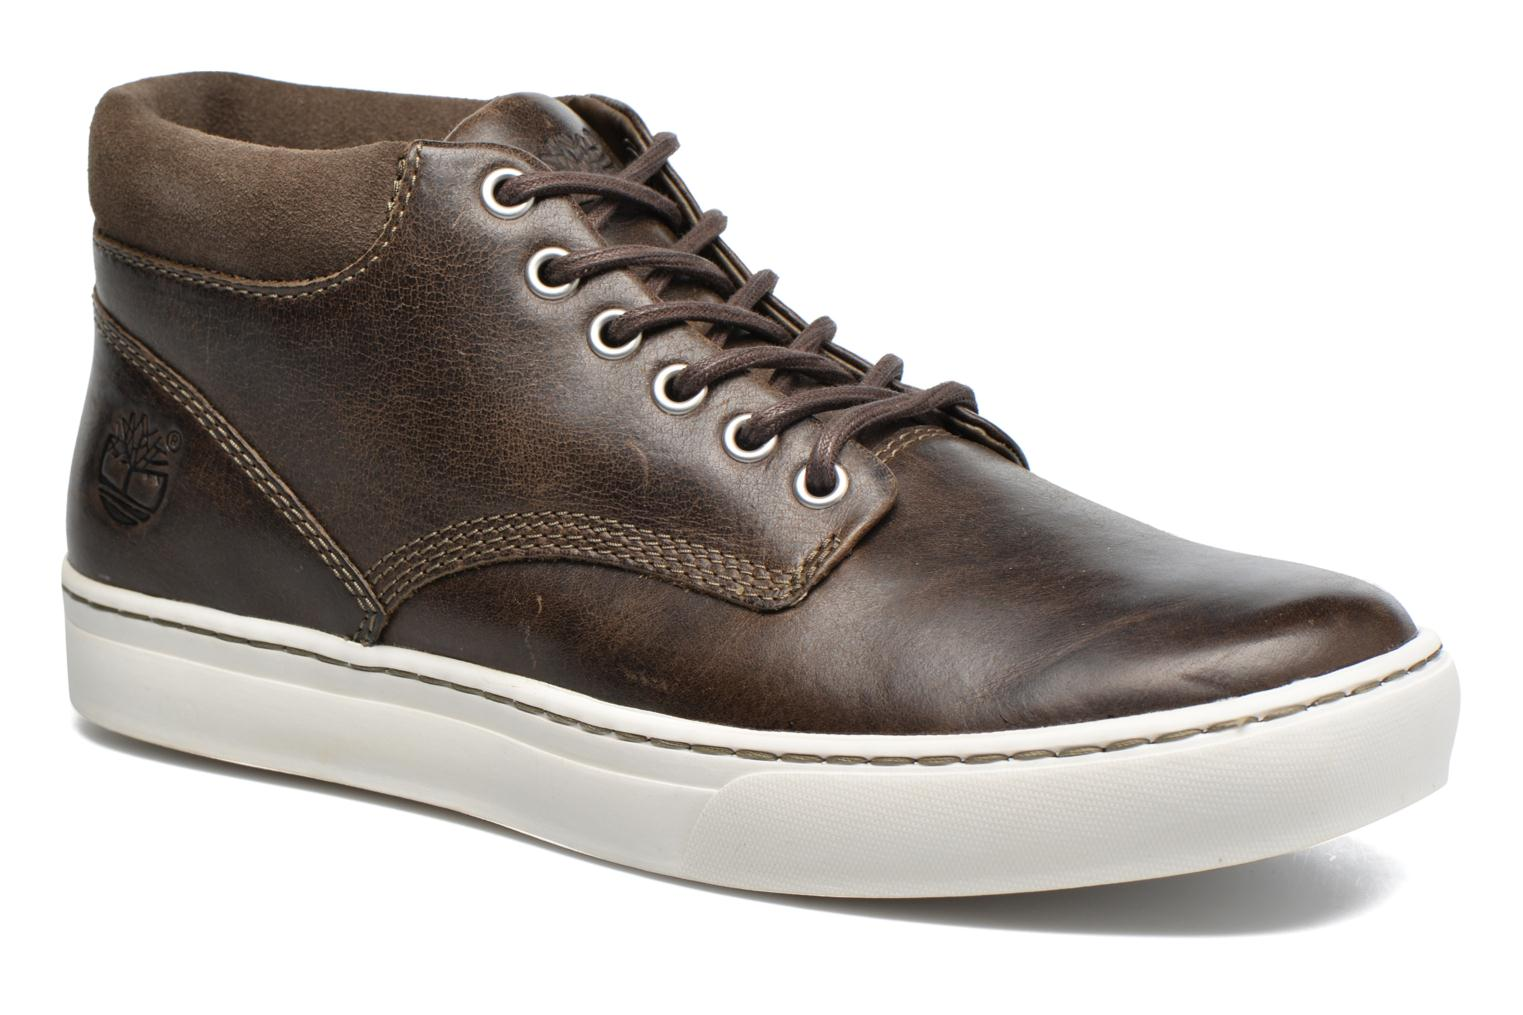 sneakers-adventure-20-cupsole-chukka-by-timberland